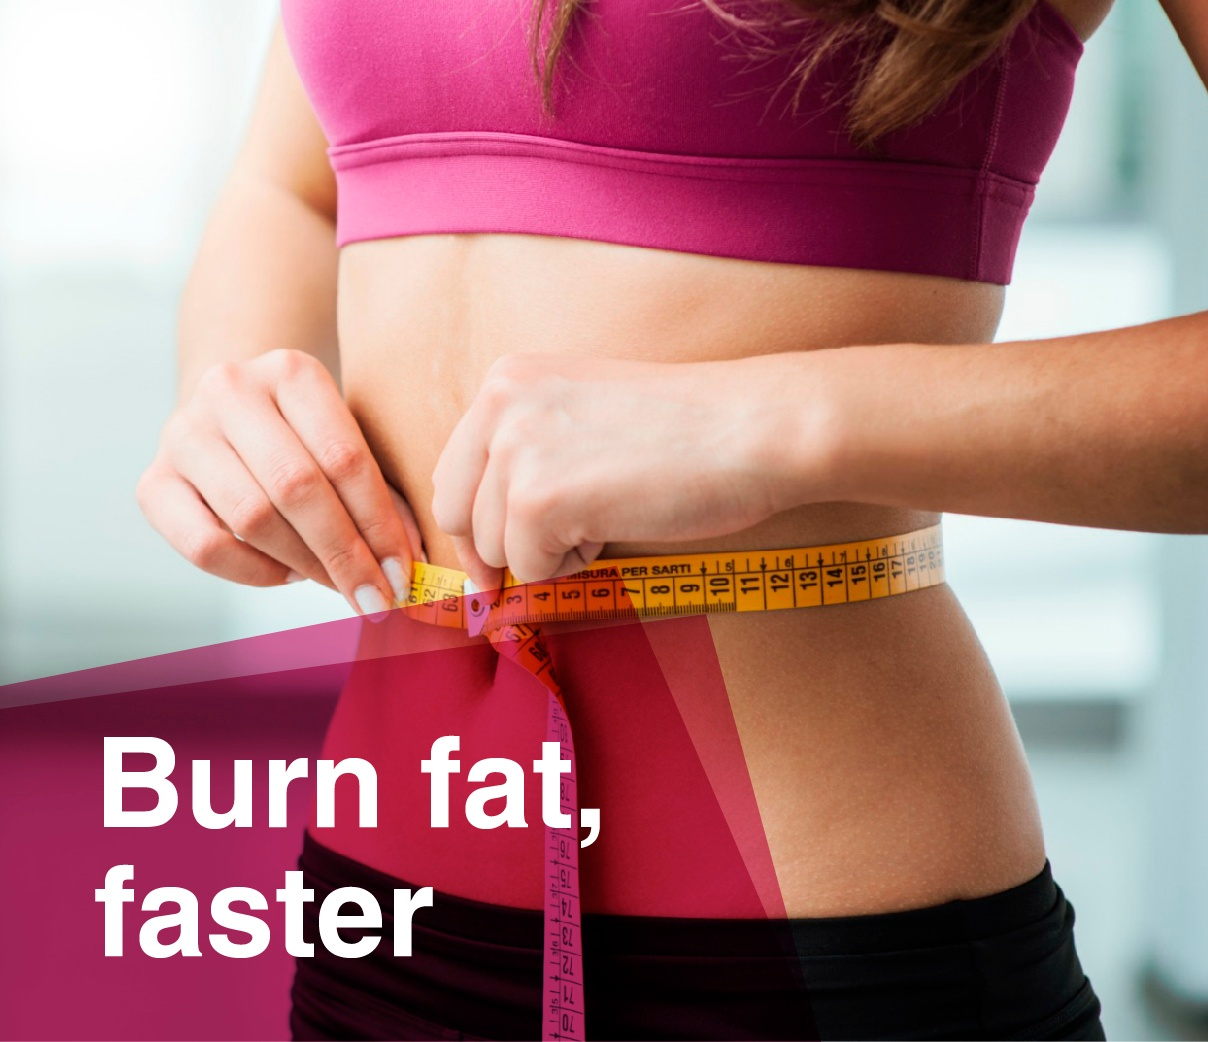 lipotropic%20injections%20burn%20fat-1